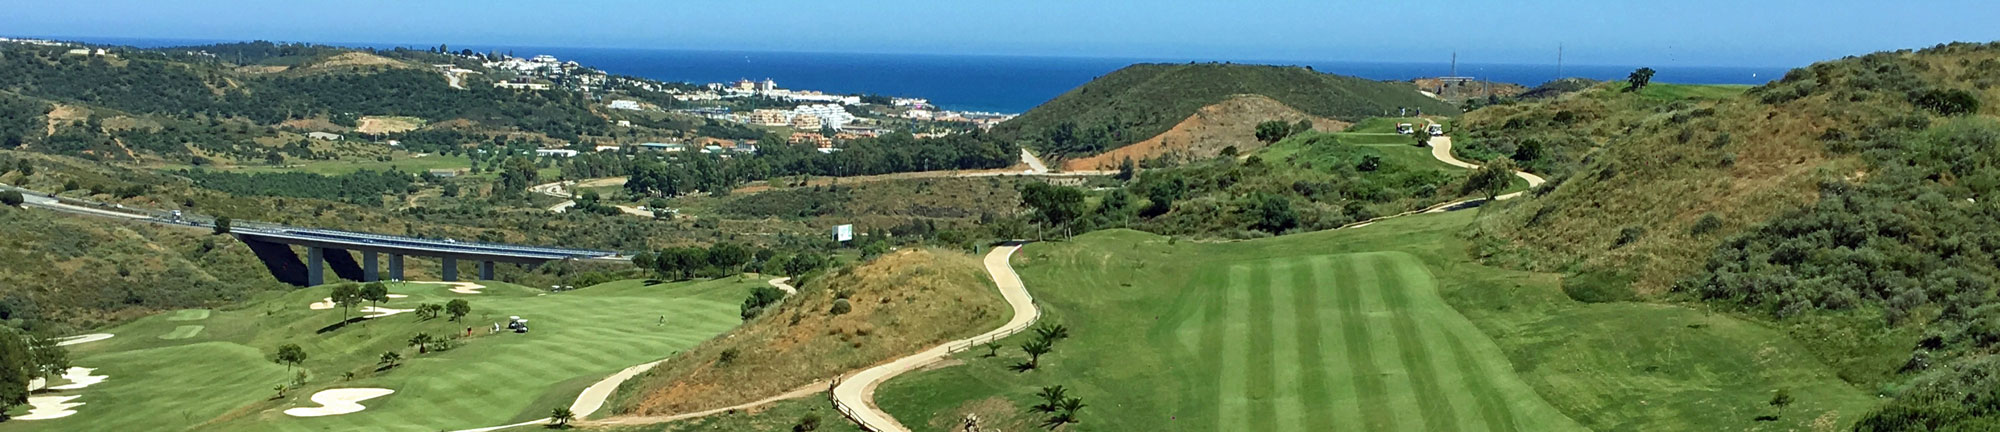 3 Night Golfing Break in Spain